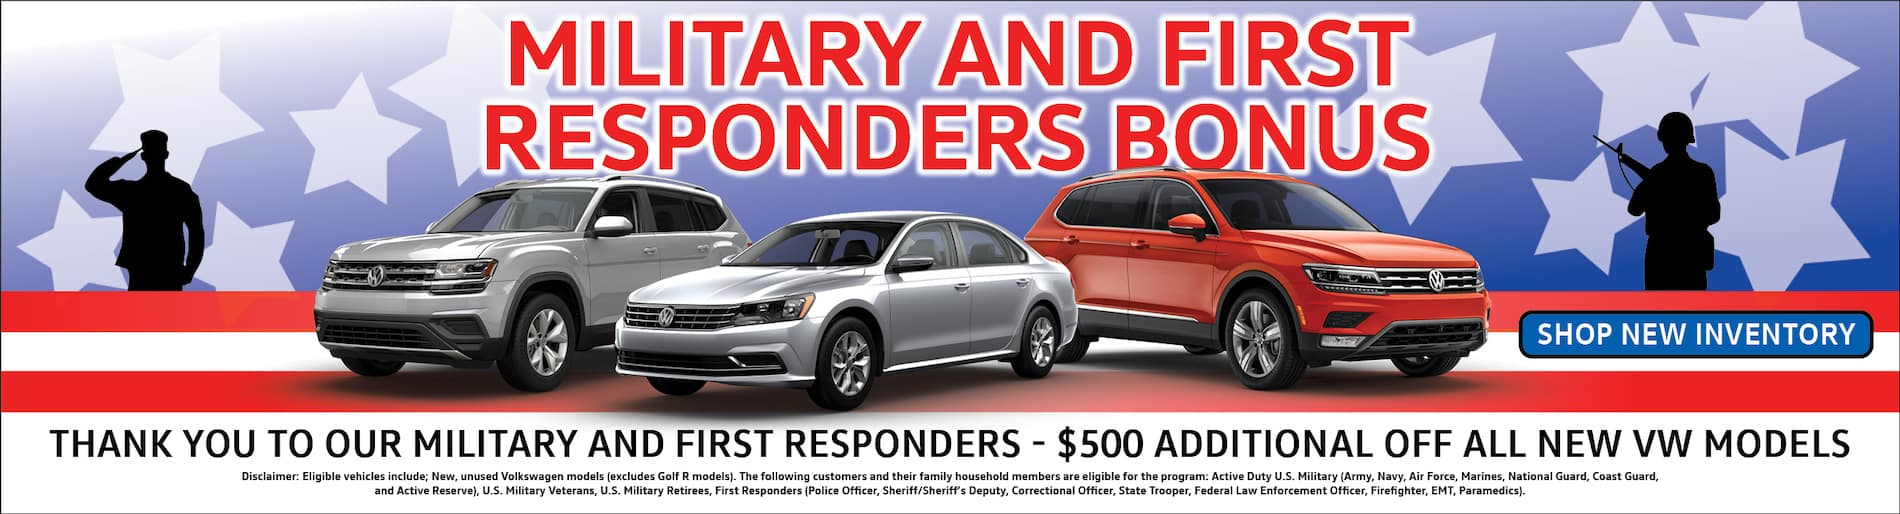 Volkswagen NS Military and first Responders